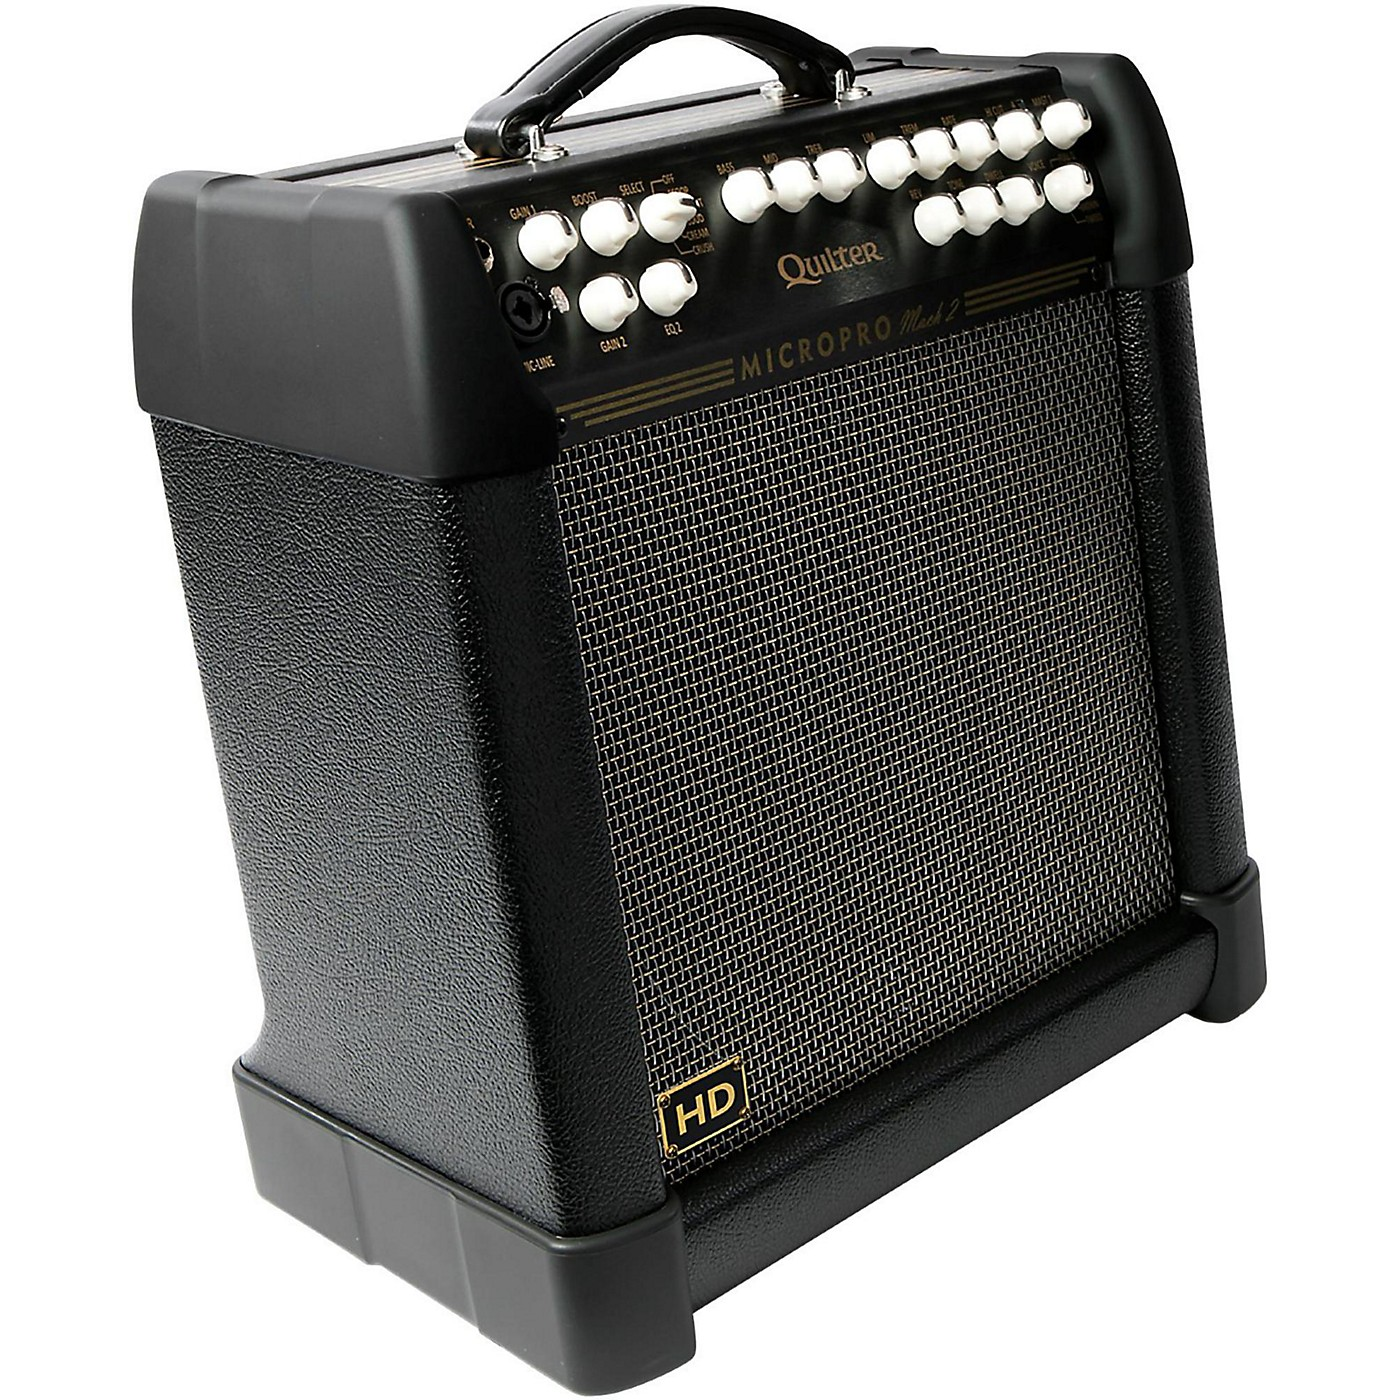 Quilter Labs Mach 2 12-Inch HD 200W 1x12 Combo Guitar Amplifier thumbnail